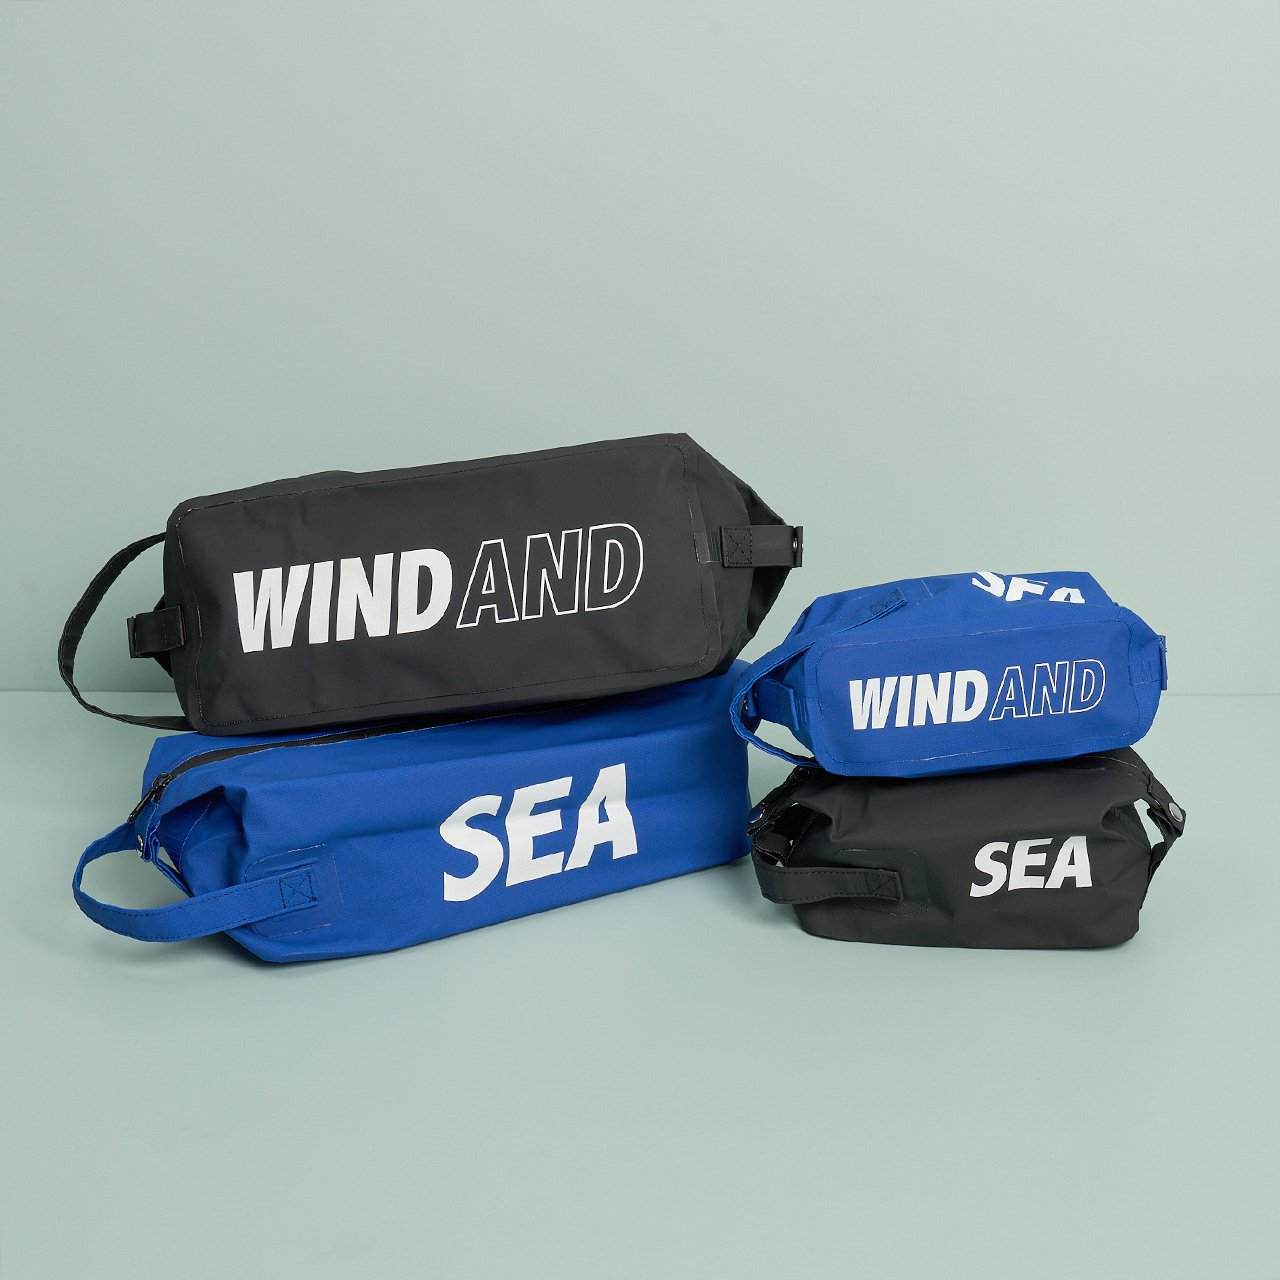 WIND AND SEA<BR>WDS DOPP KIT BAG<BR>